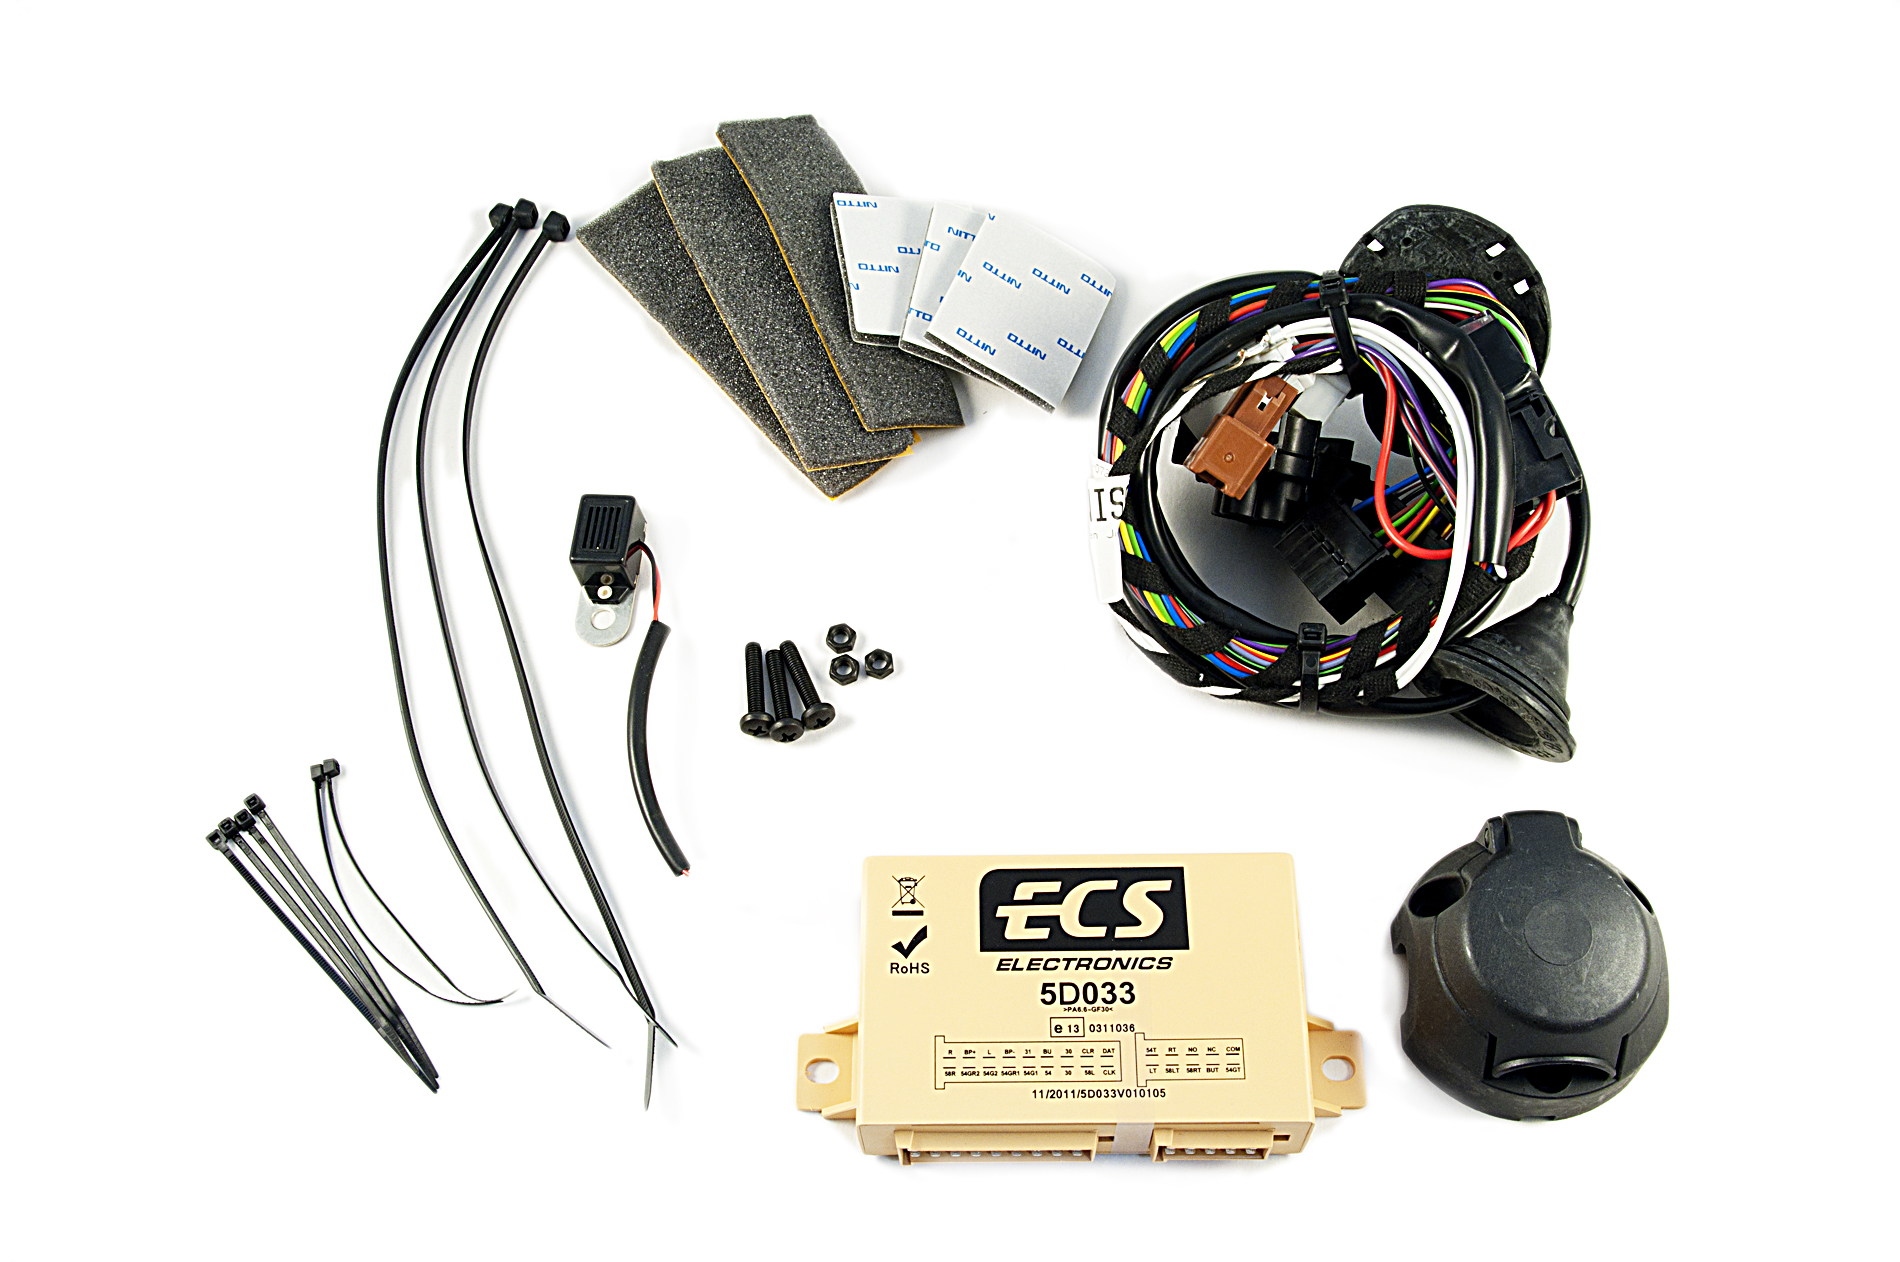 nissan 7 pin trailer wiring nissan genuine 7-pin electrical kit/wiring for tow bar ... #3